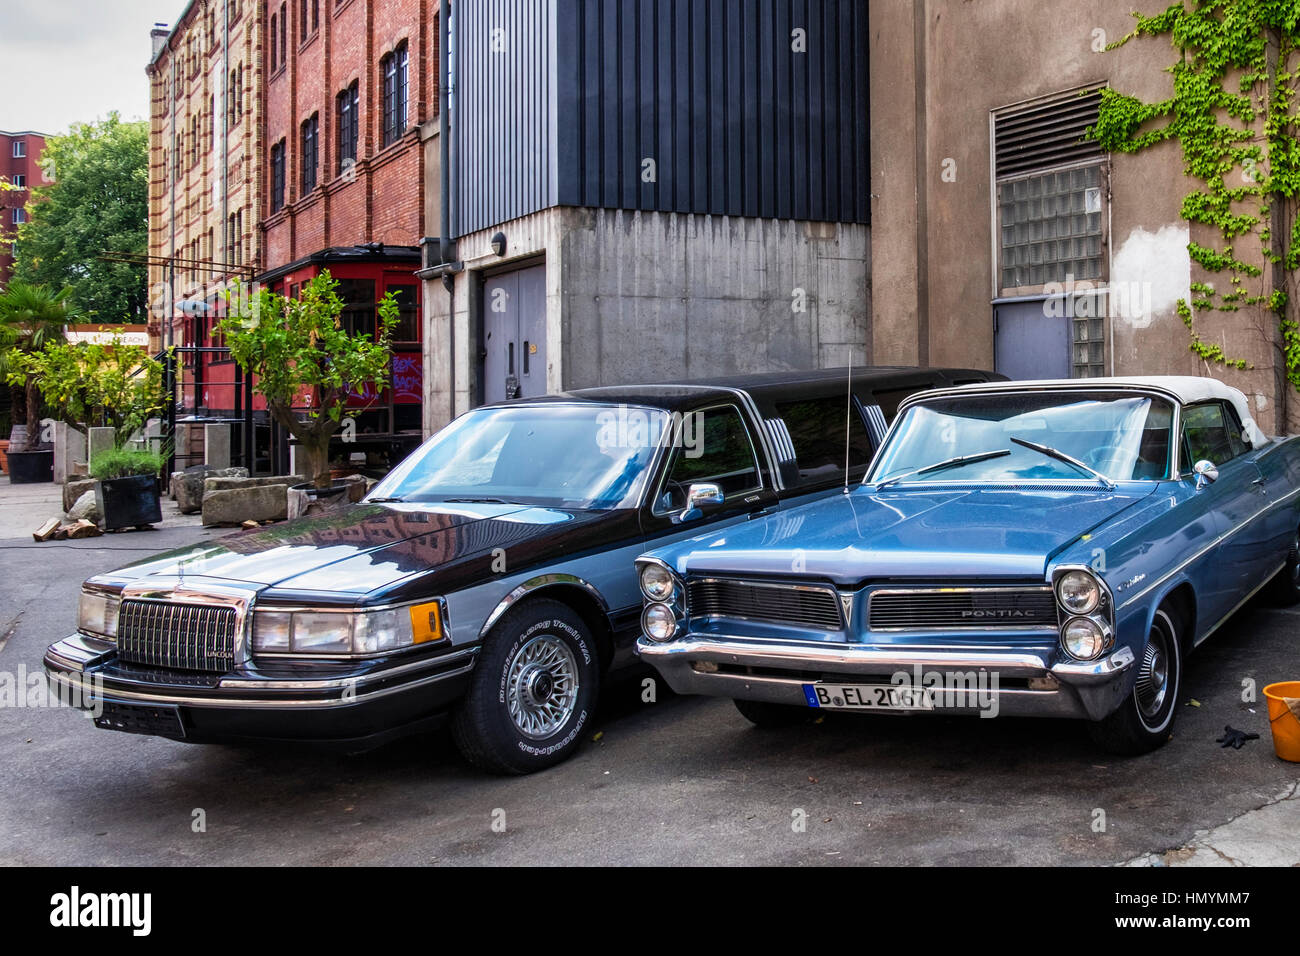 Berlin, Kreuzberg. Vintage car parked outside Sage restaurant housed in a beautifully restored old building with - Stock Image